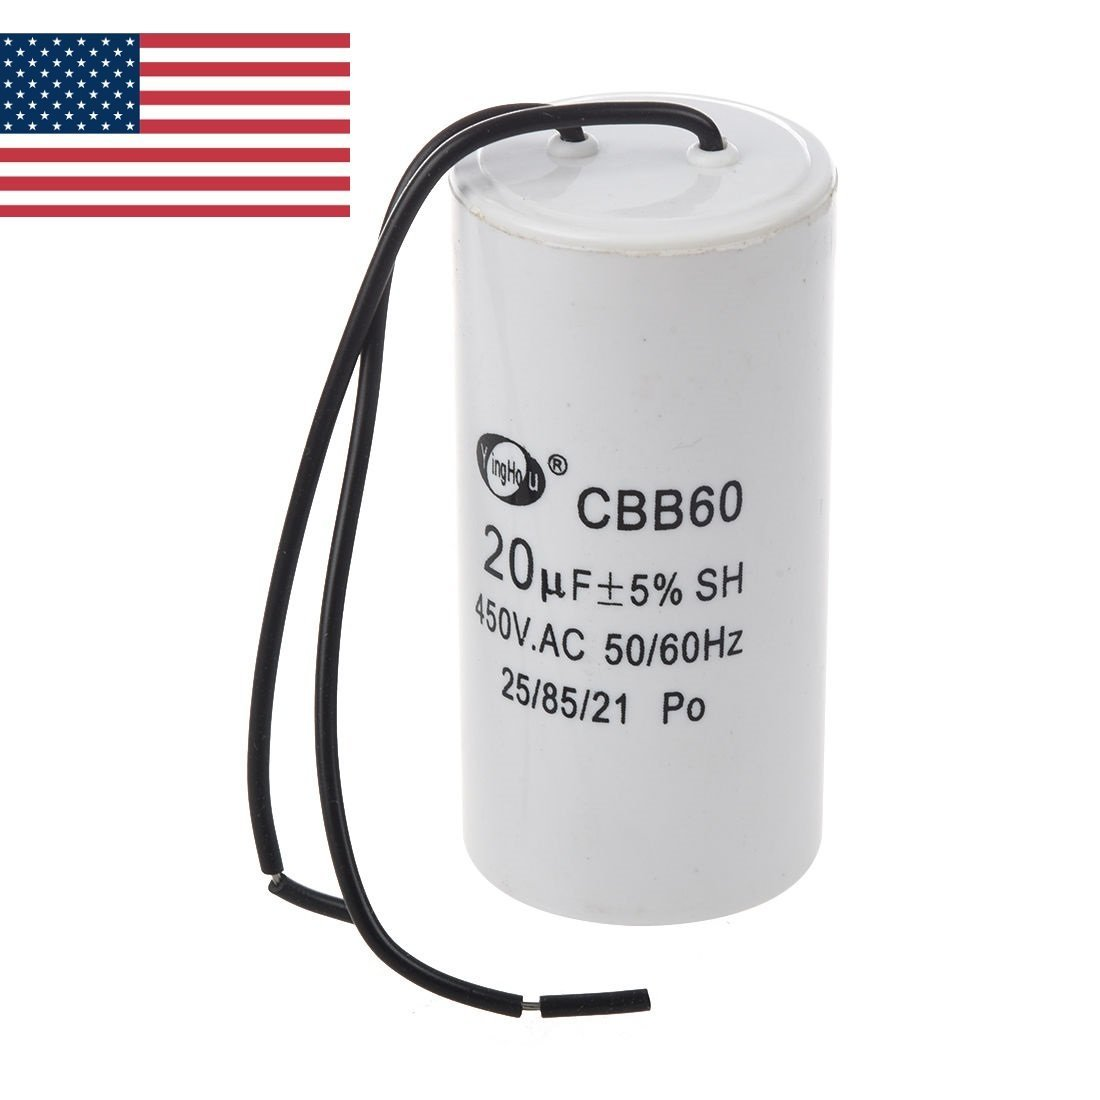 Ugtell Motor Capacitor Cbb60 capacitance 60Uf 450Vac frequency 50//60Hz white capacitor 60Uf